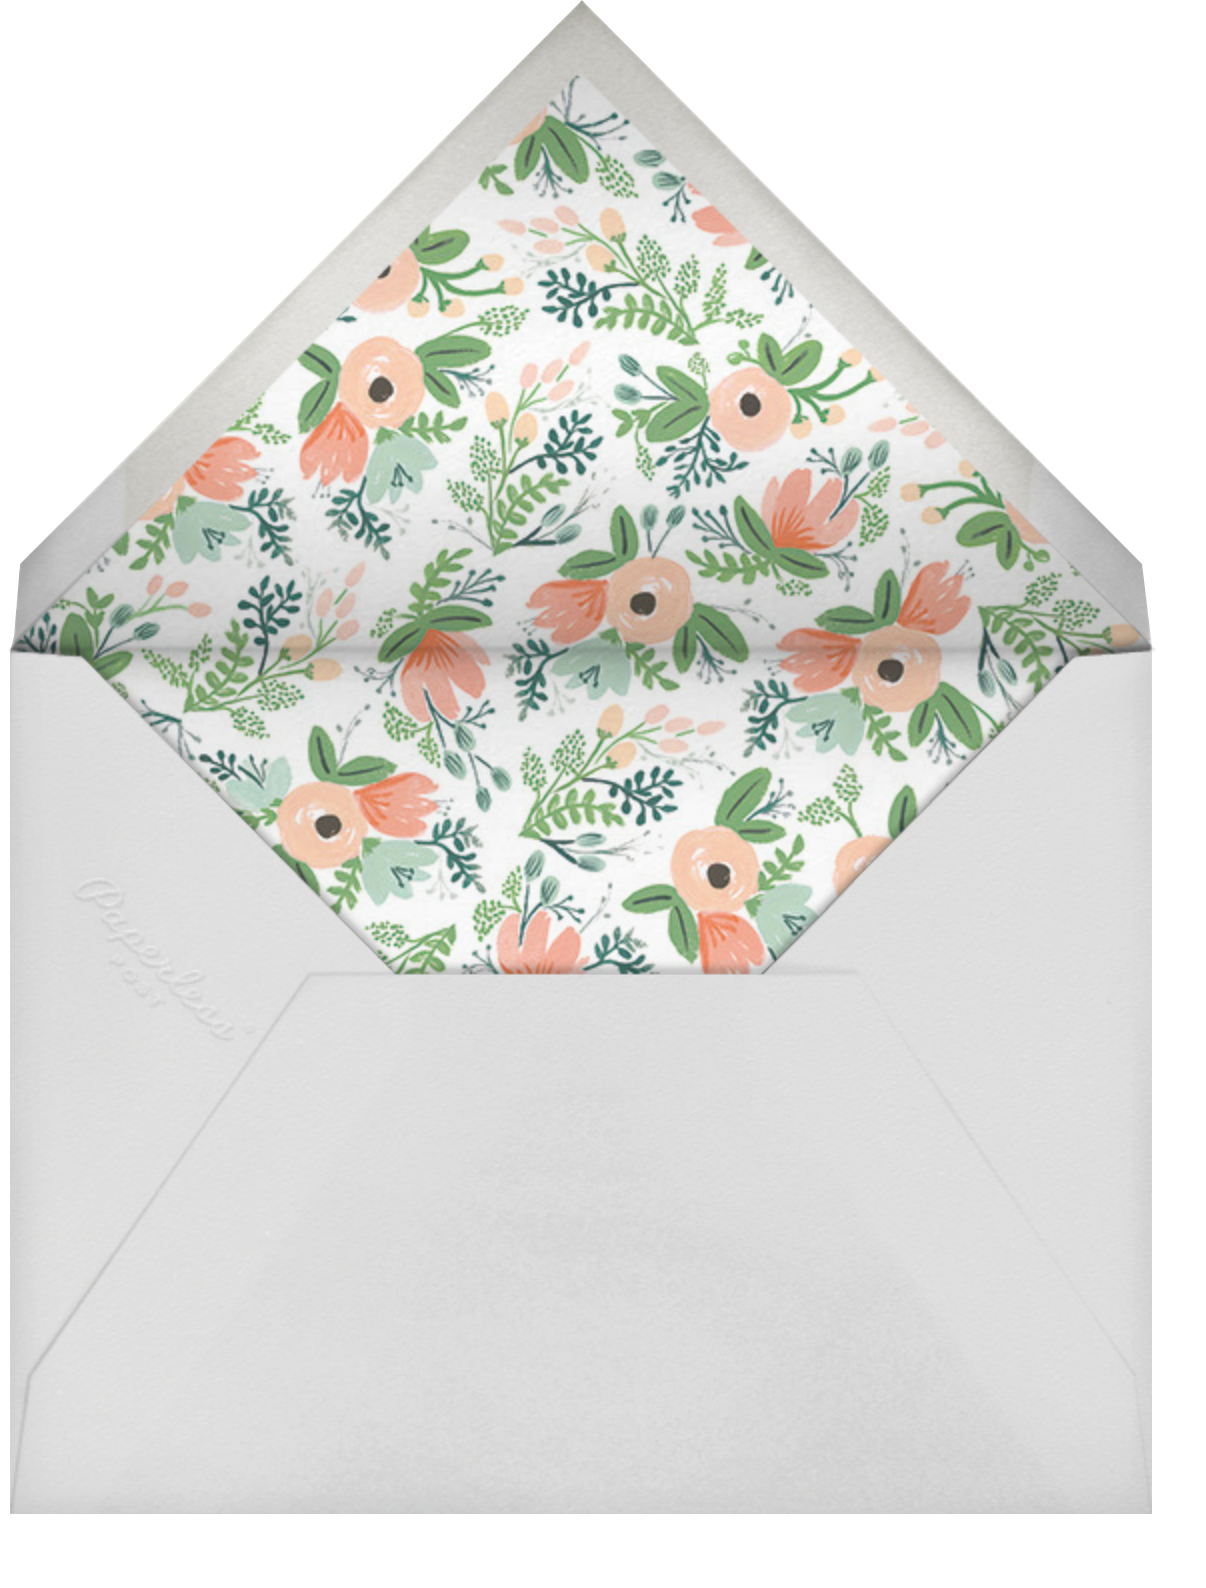 Floral Silhouette (Invitation) - White/Silver - Rifle Paper Co. - All - envelope back